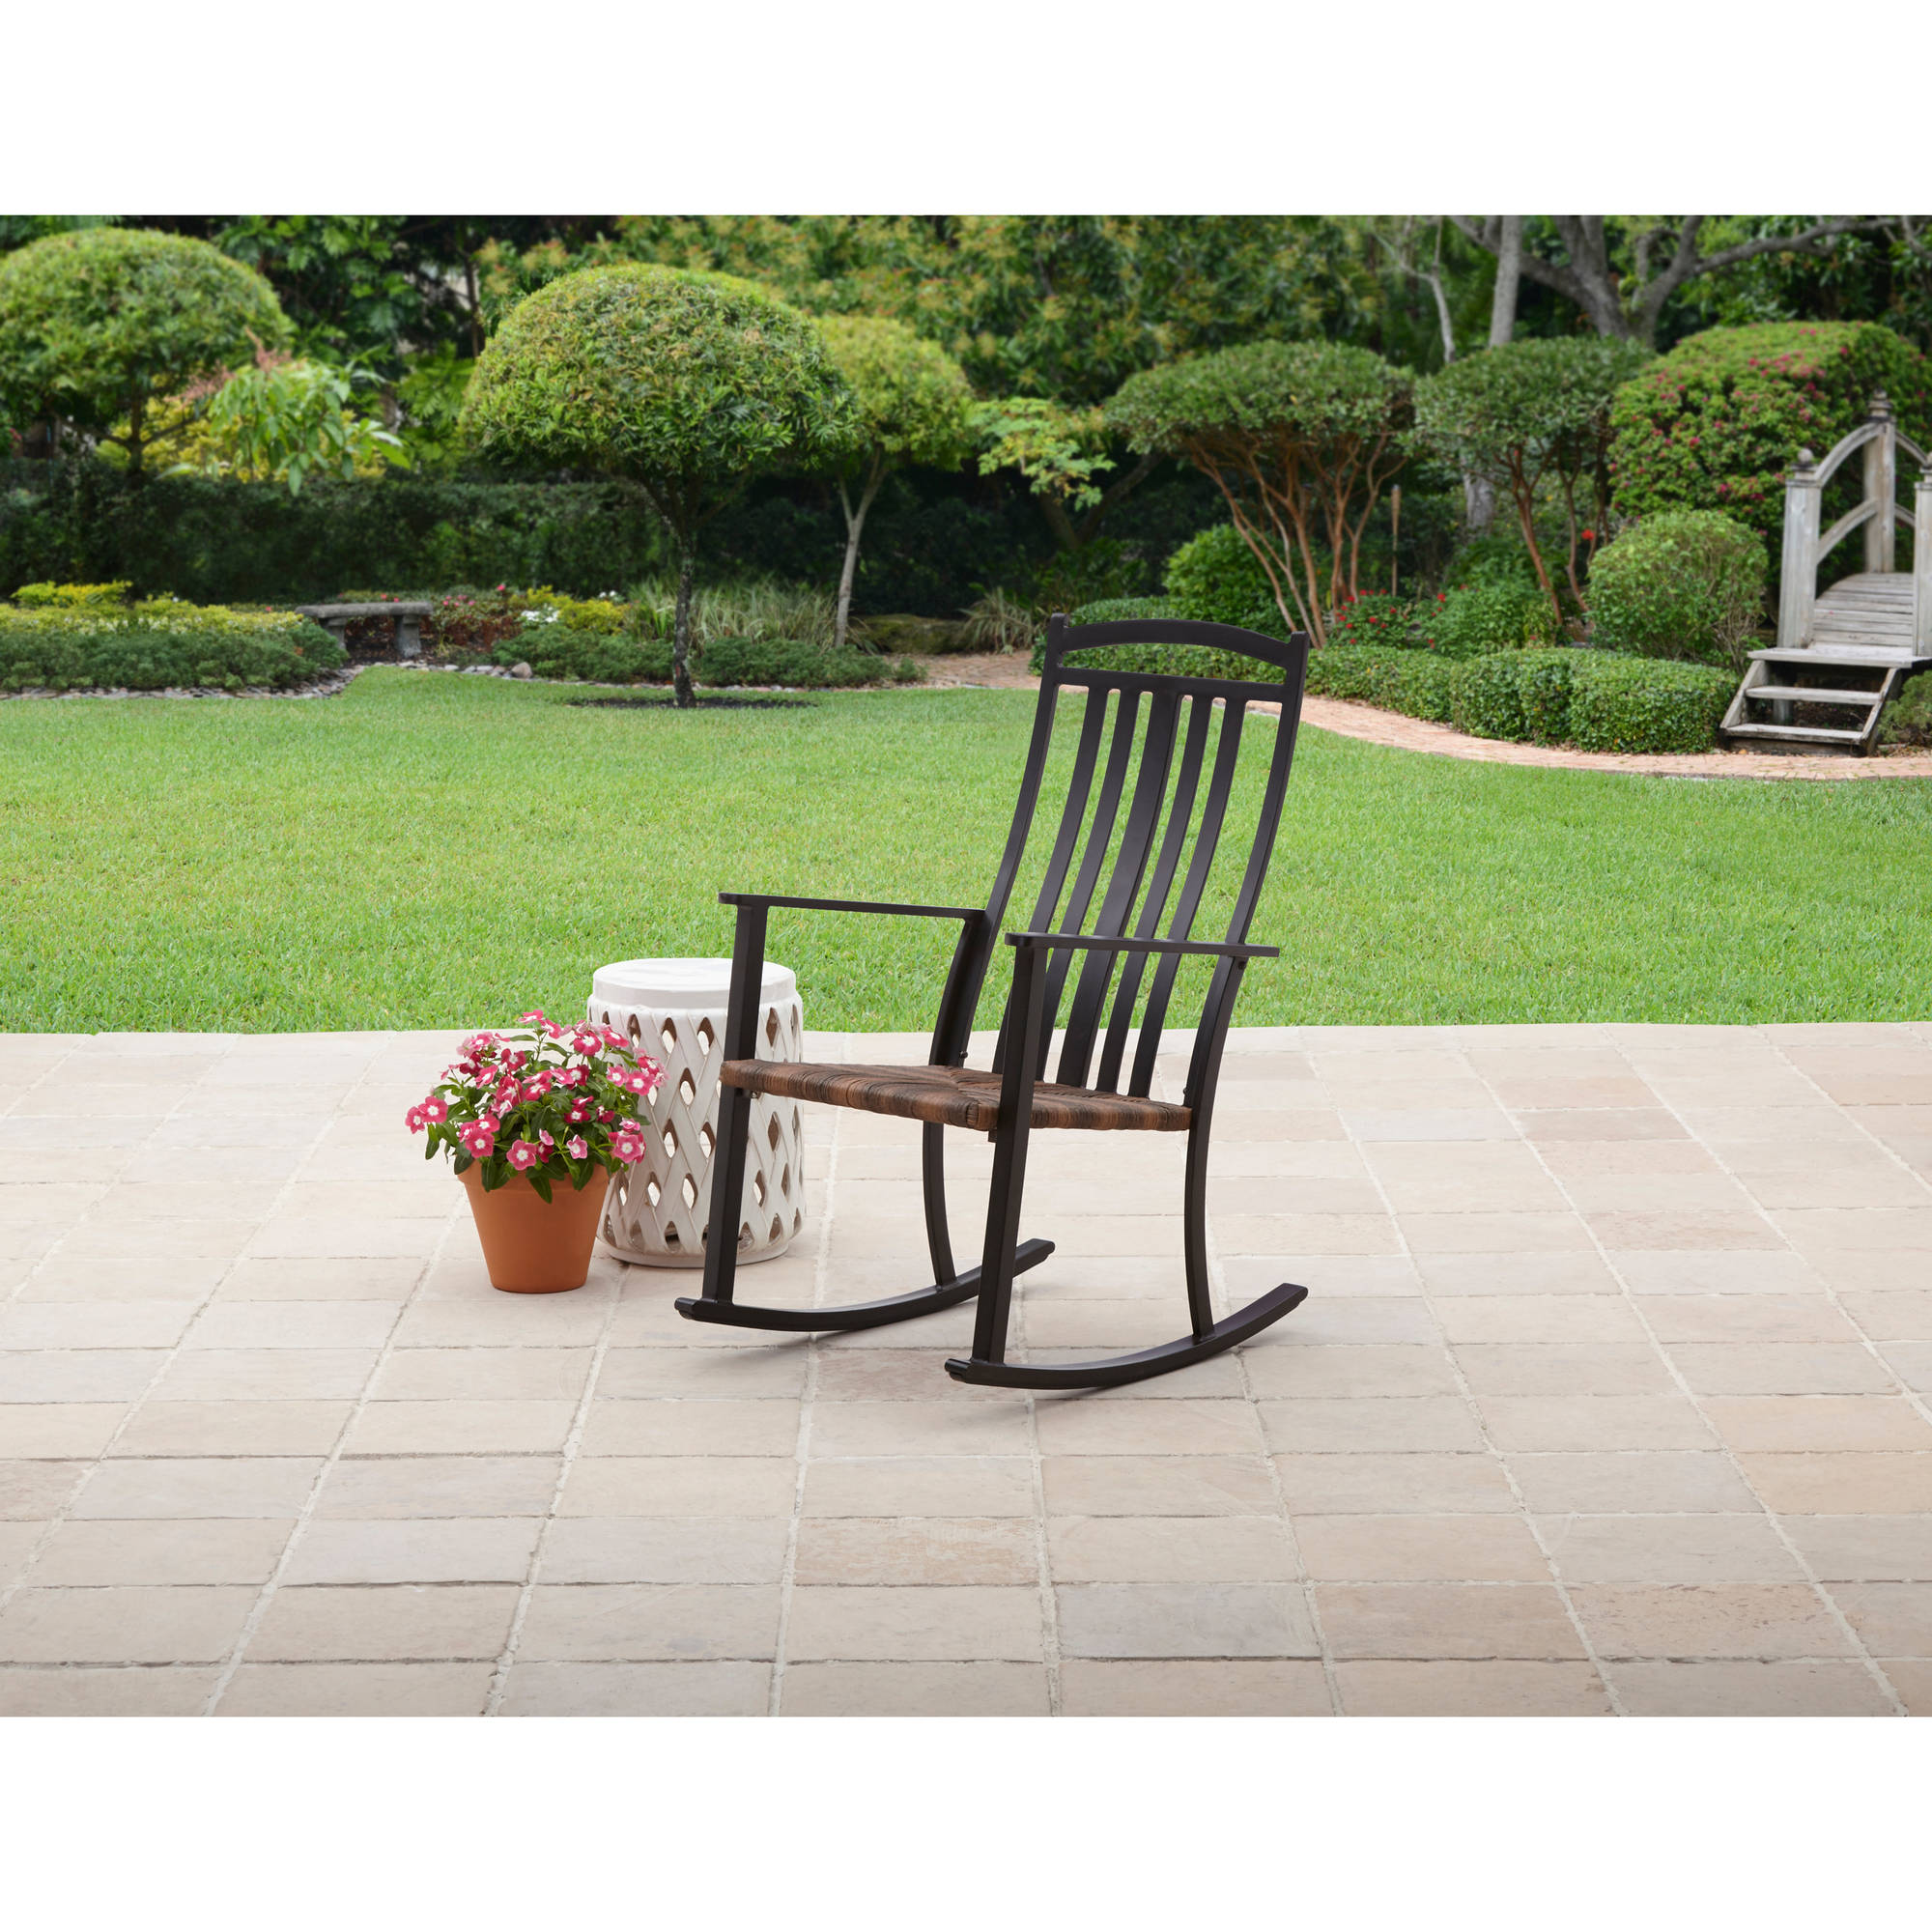 Better Homes and Gardens Belle Drive Steel Wicker Rocking High Back Chair